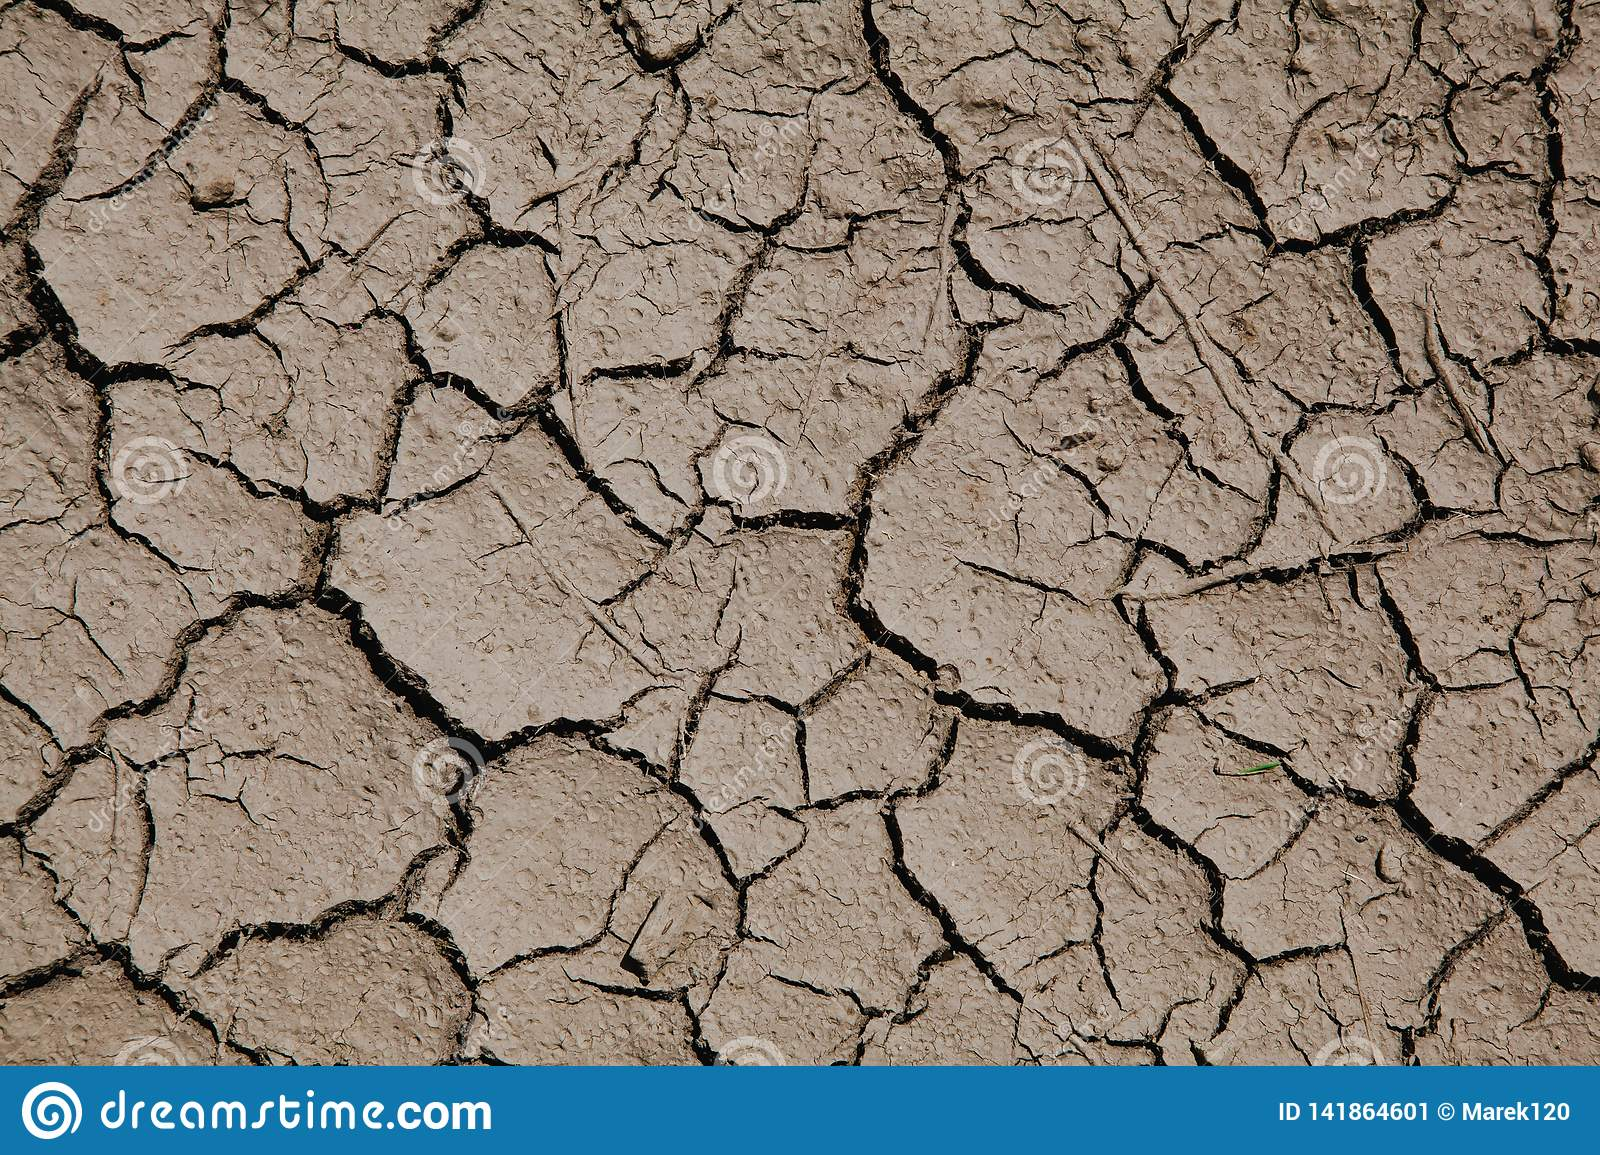 Risk of global warming - dry soil with cracks.